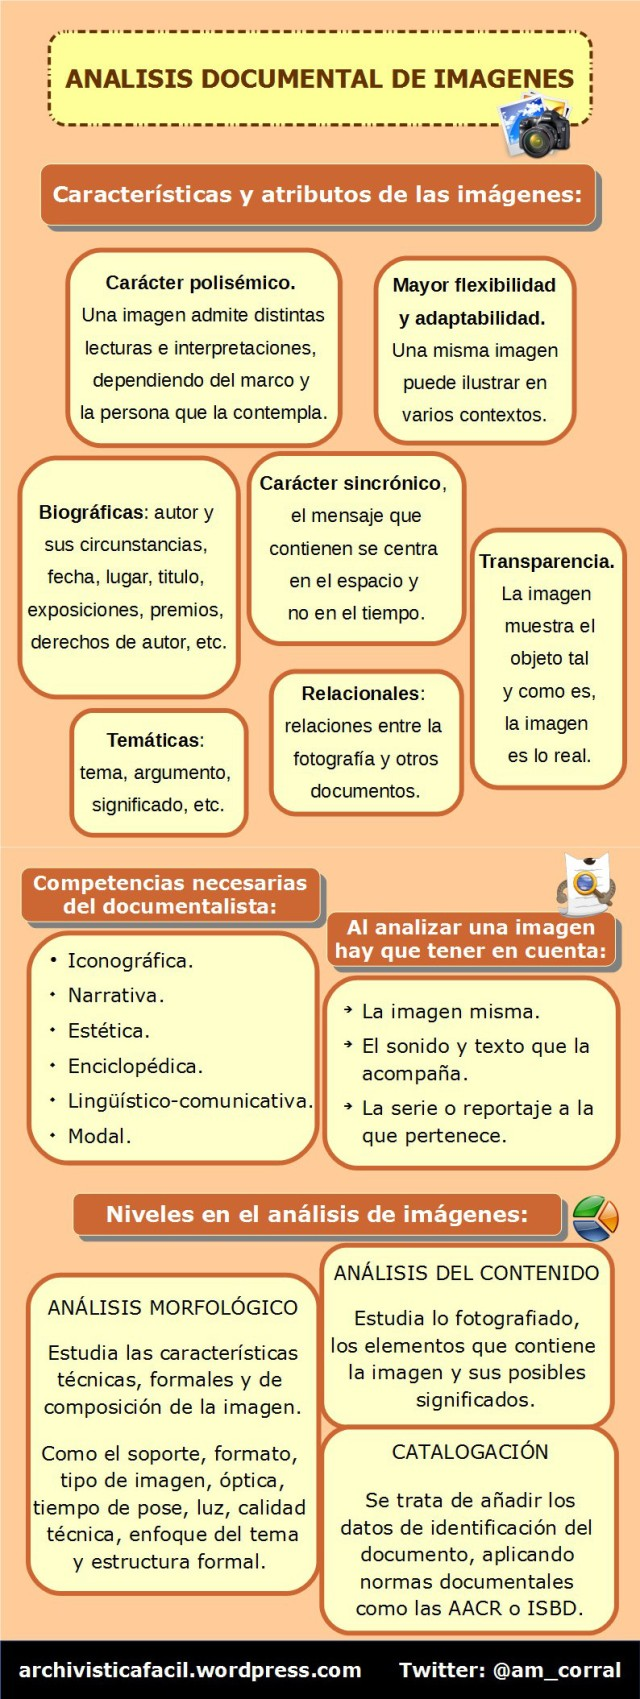 Analisis documental de imagenes